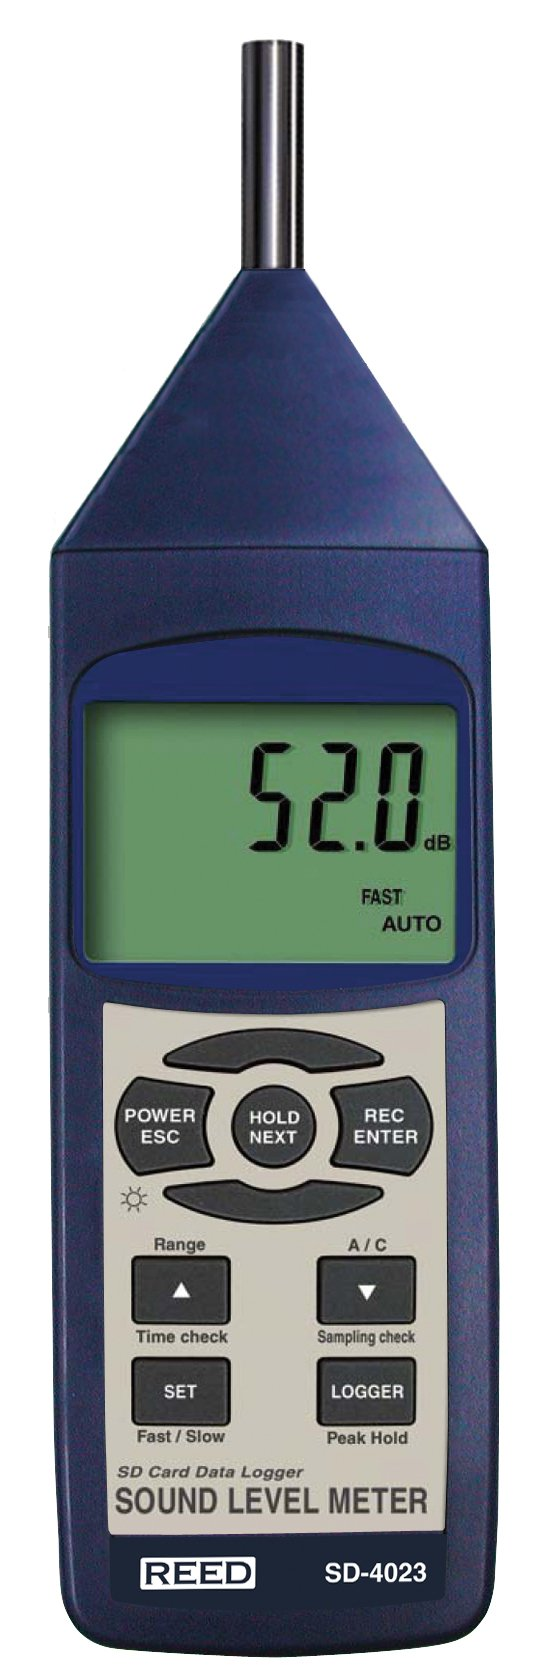 REED Instruments SD-4023 Sound Level Meter, Datalogger, 30 to 130dB